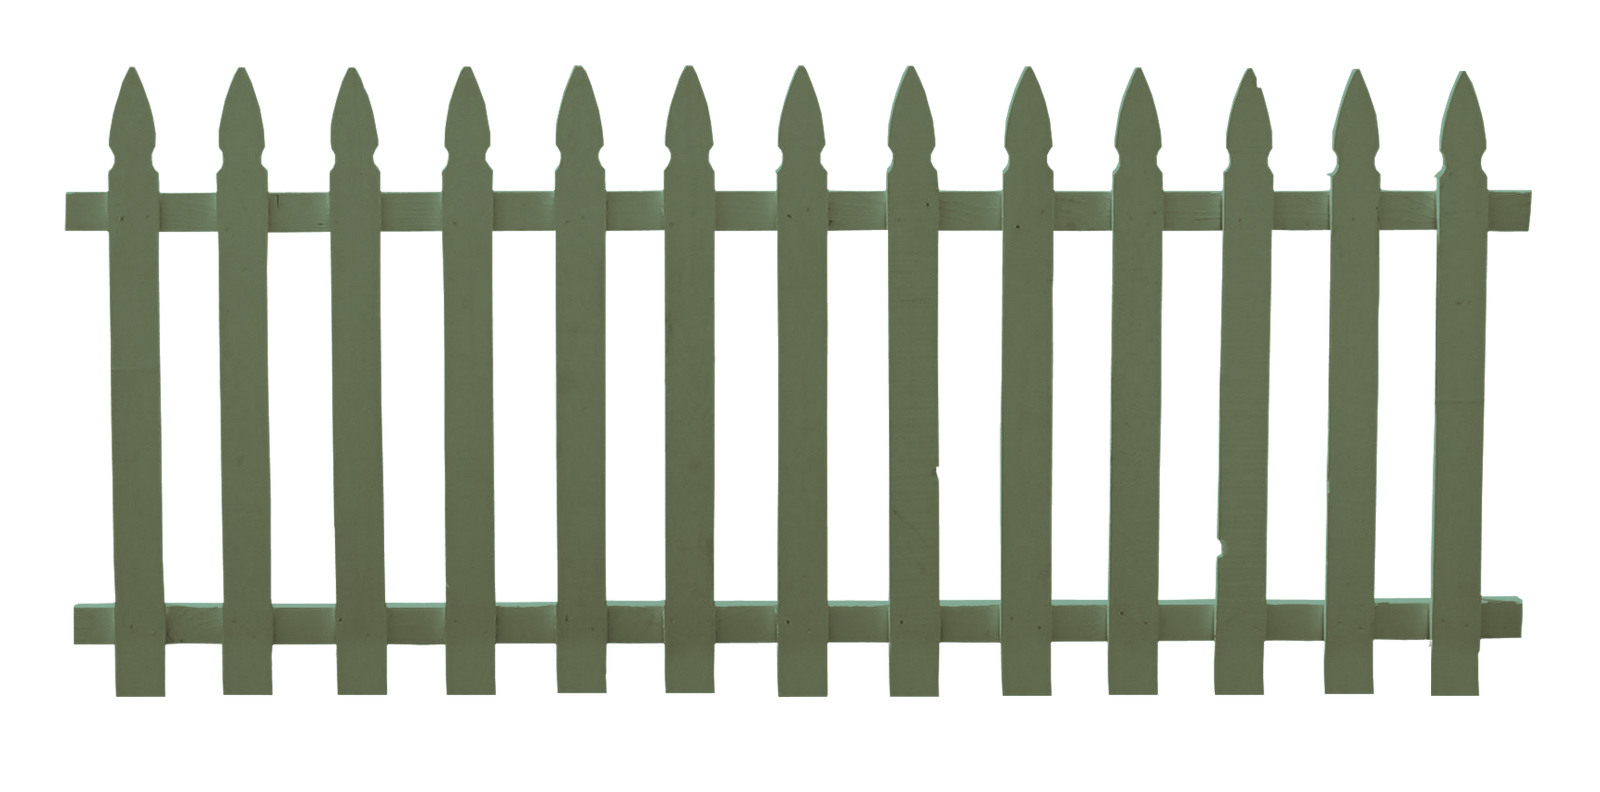 Gate clipart gothic. Entry cliparthot of gates